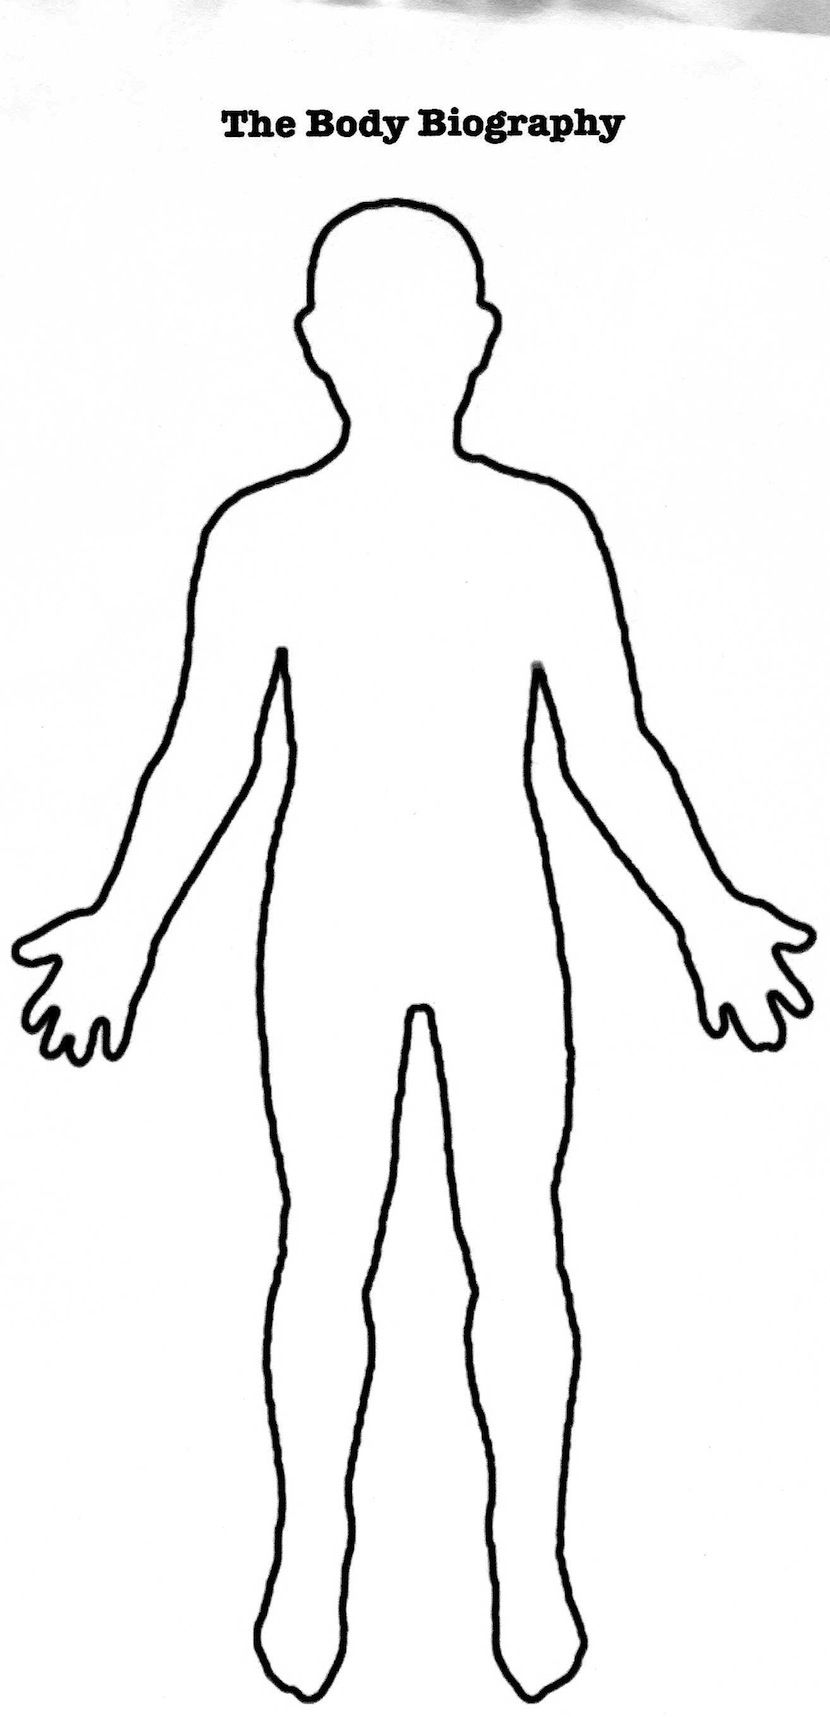 Free Human Outline Template, Download Free Clip Art, Free